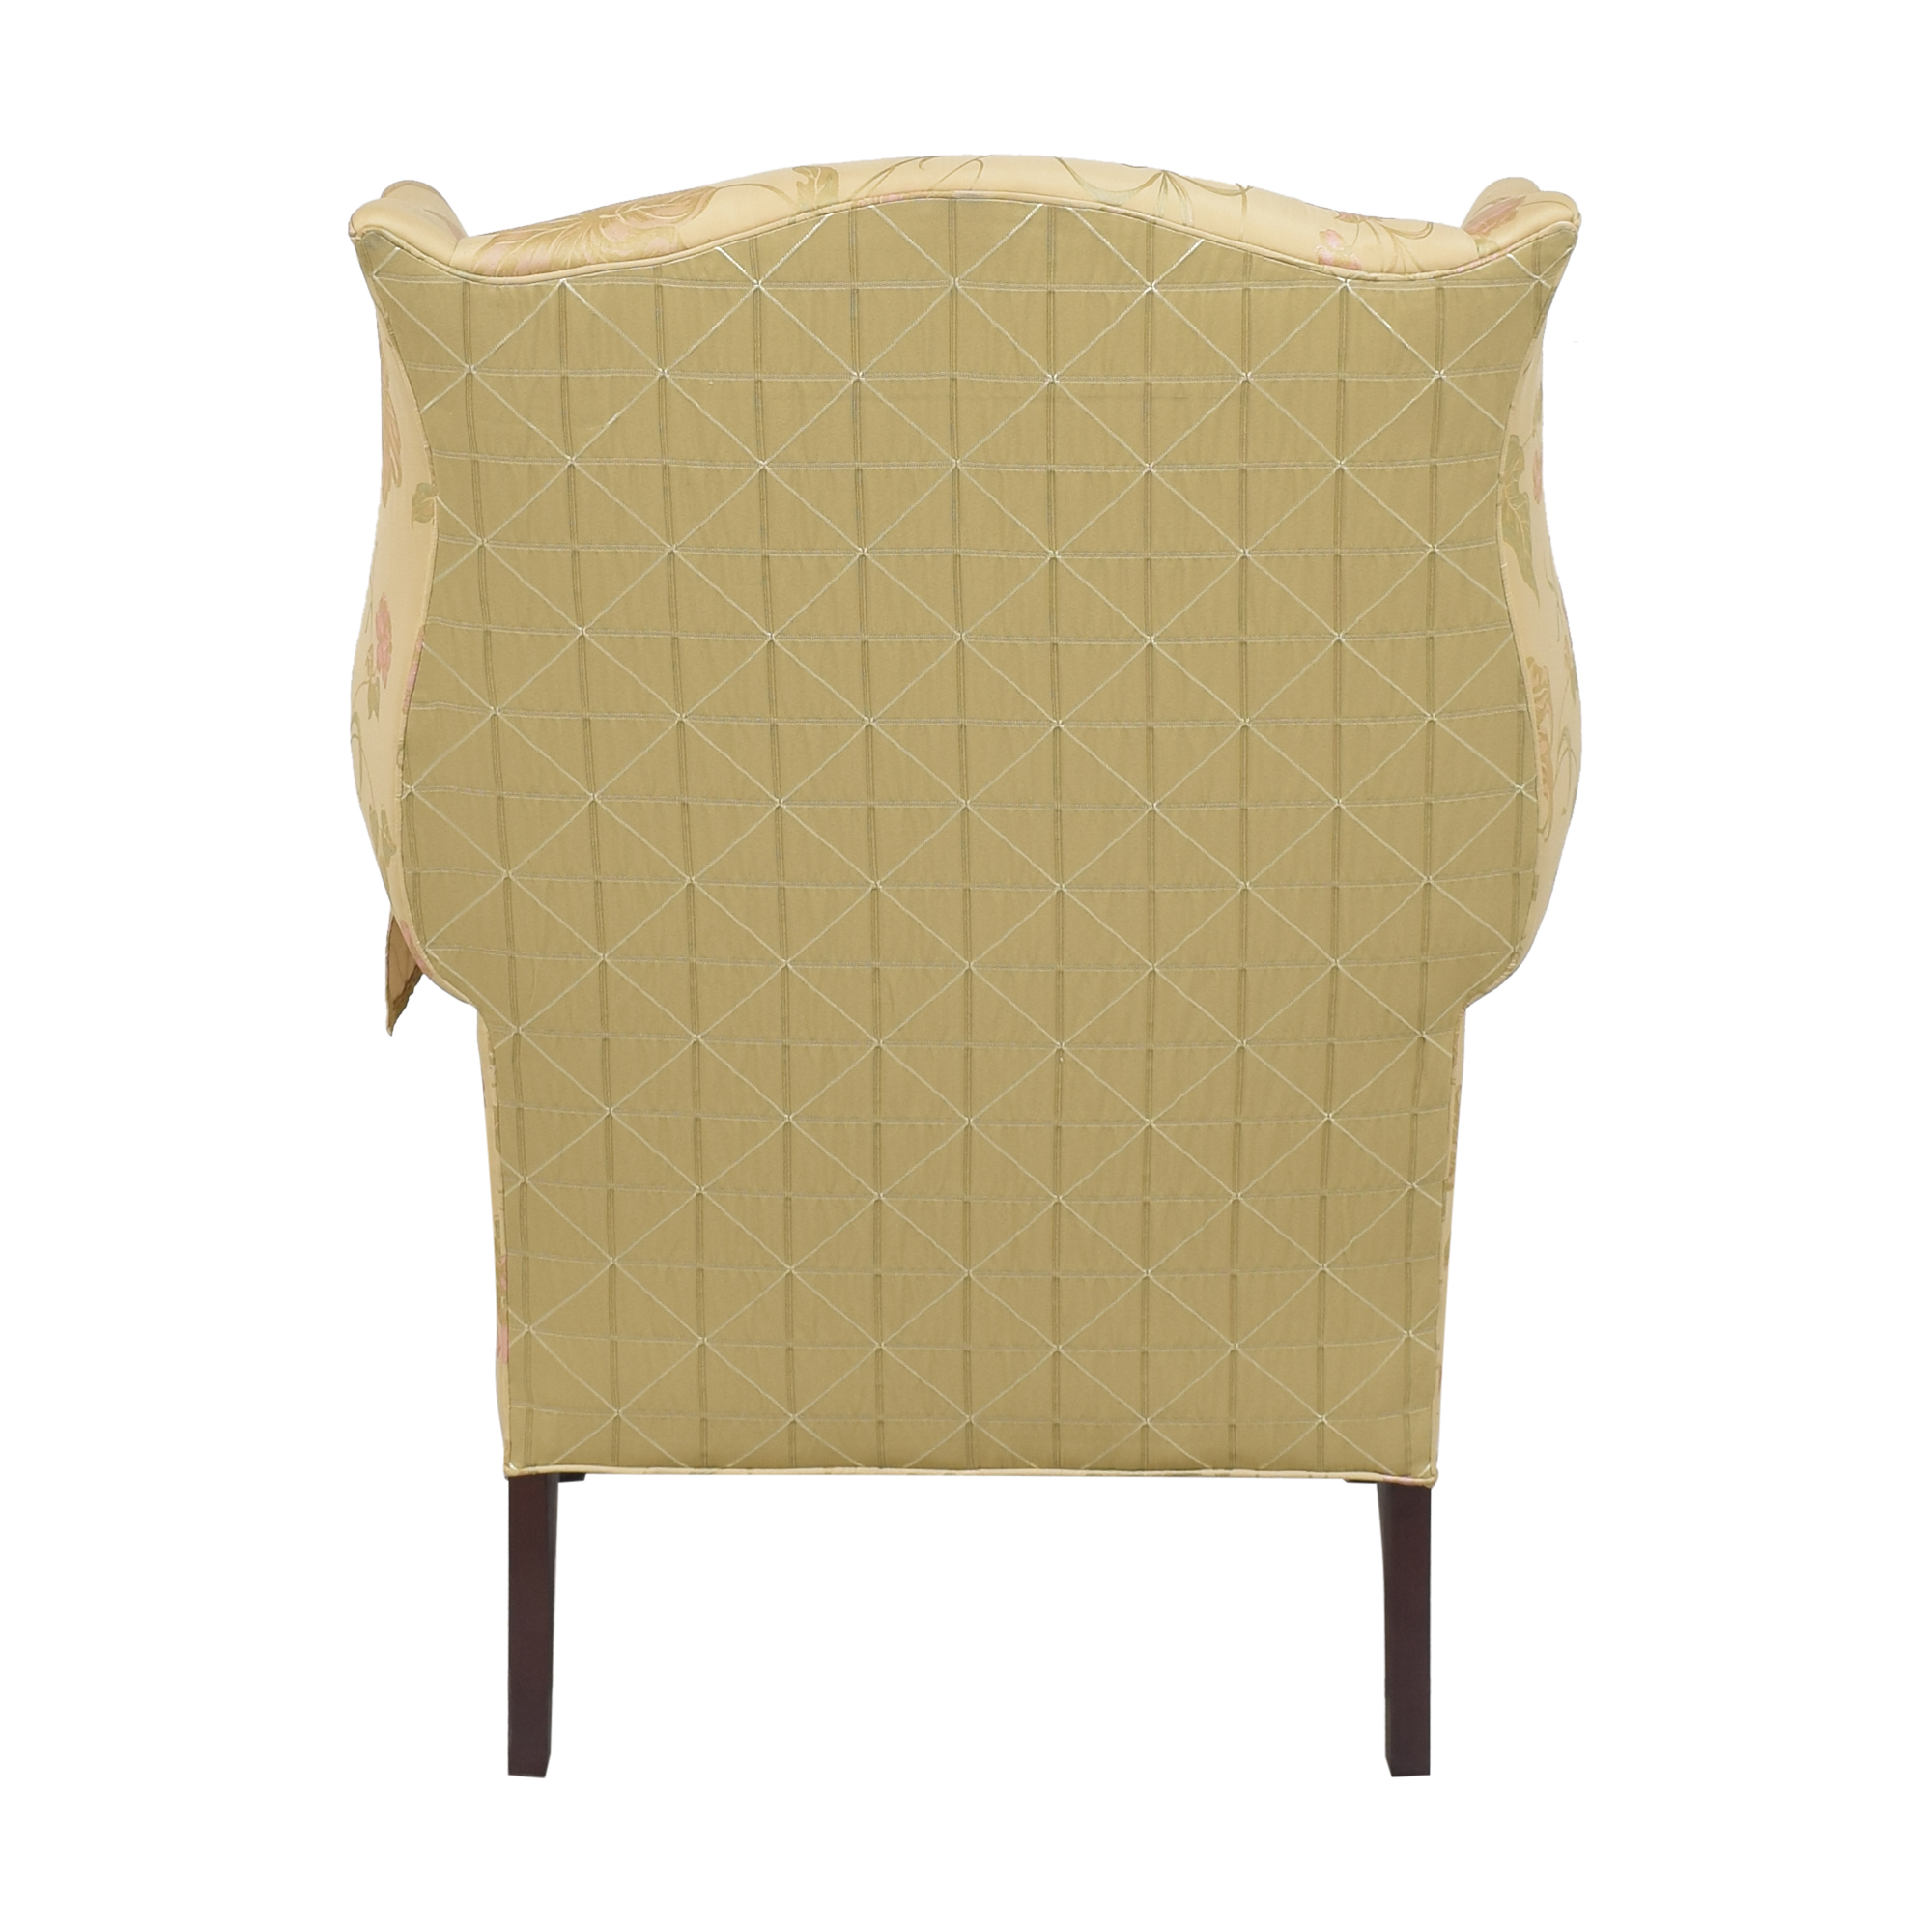 CR Laine CR Laine Upholstered Accent Chair dimensions